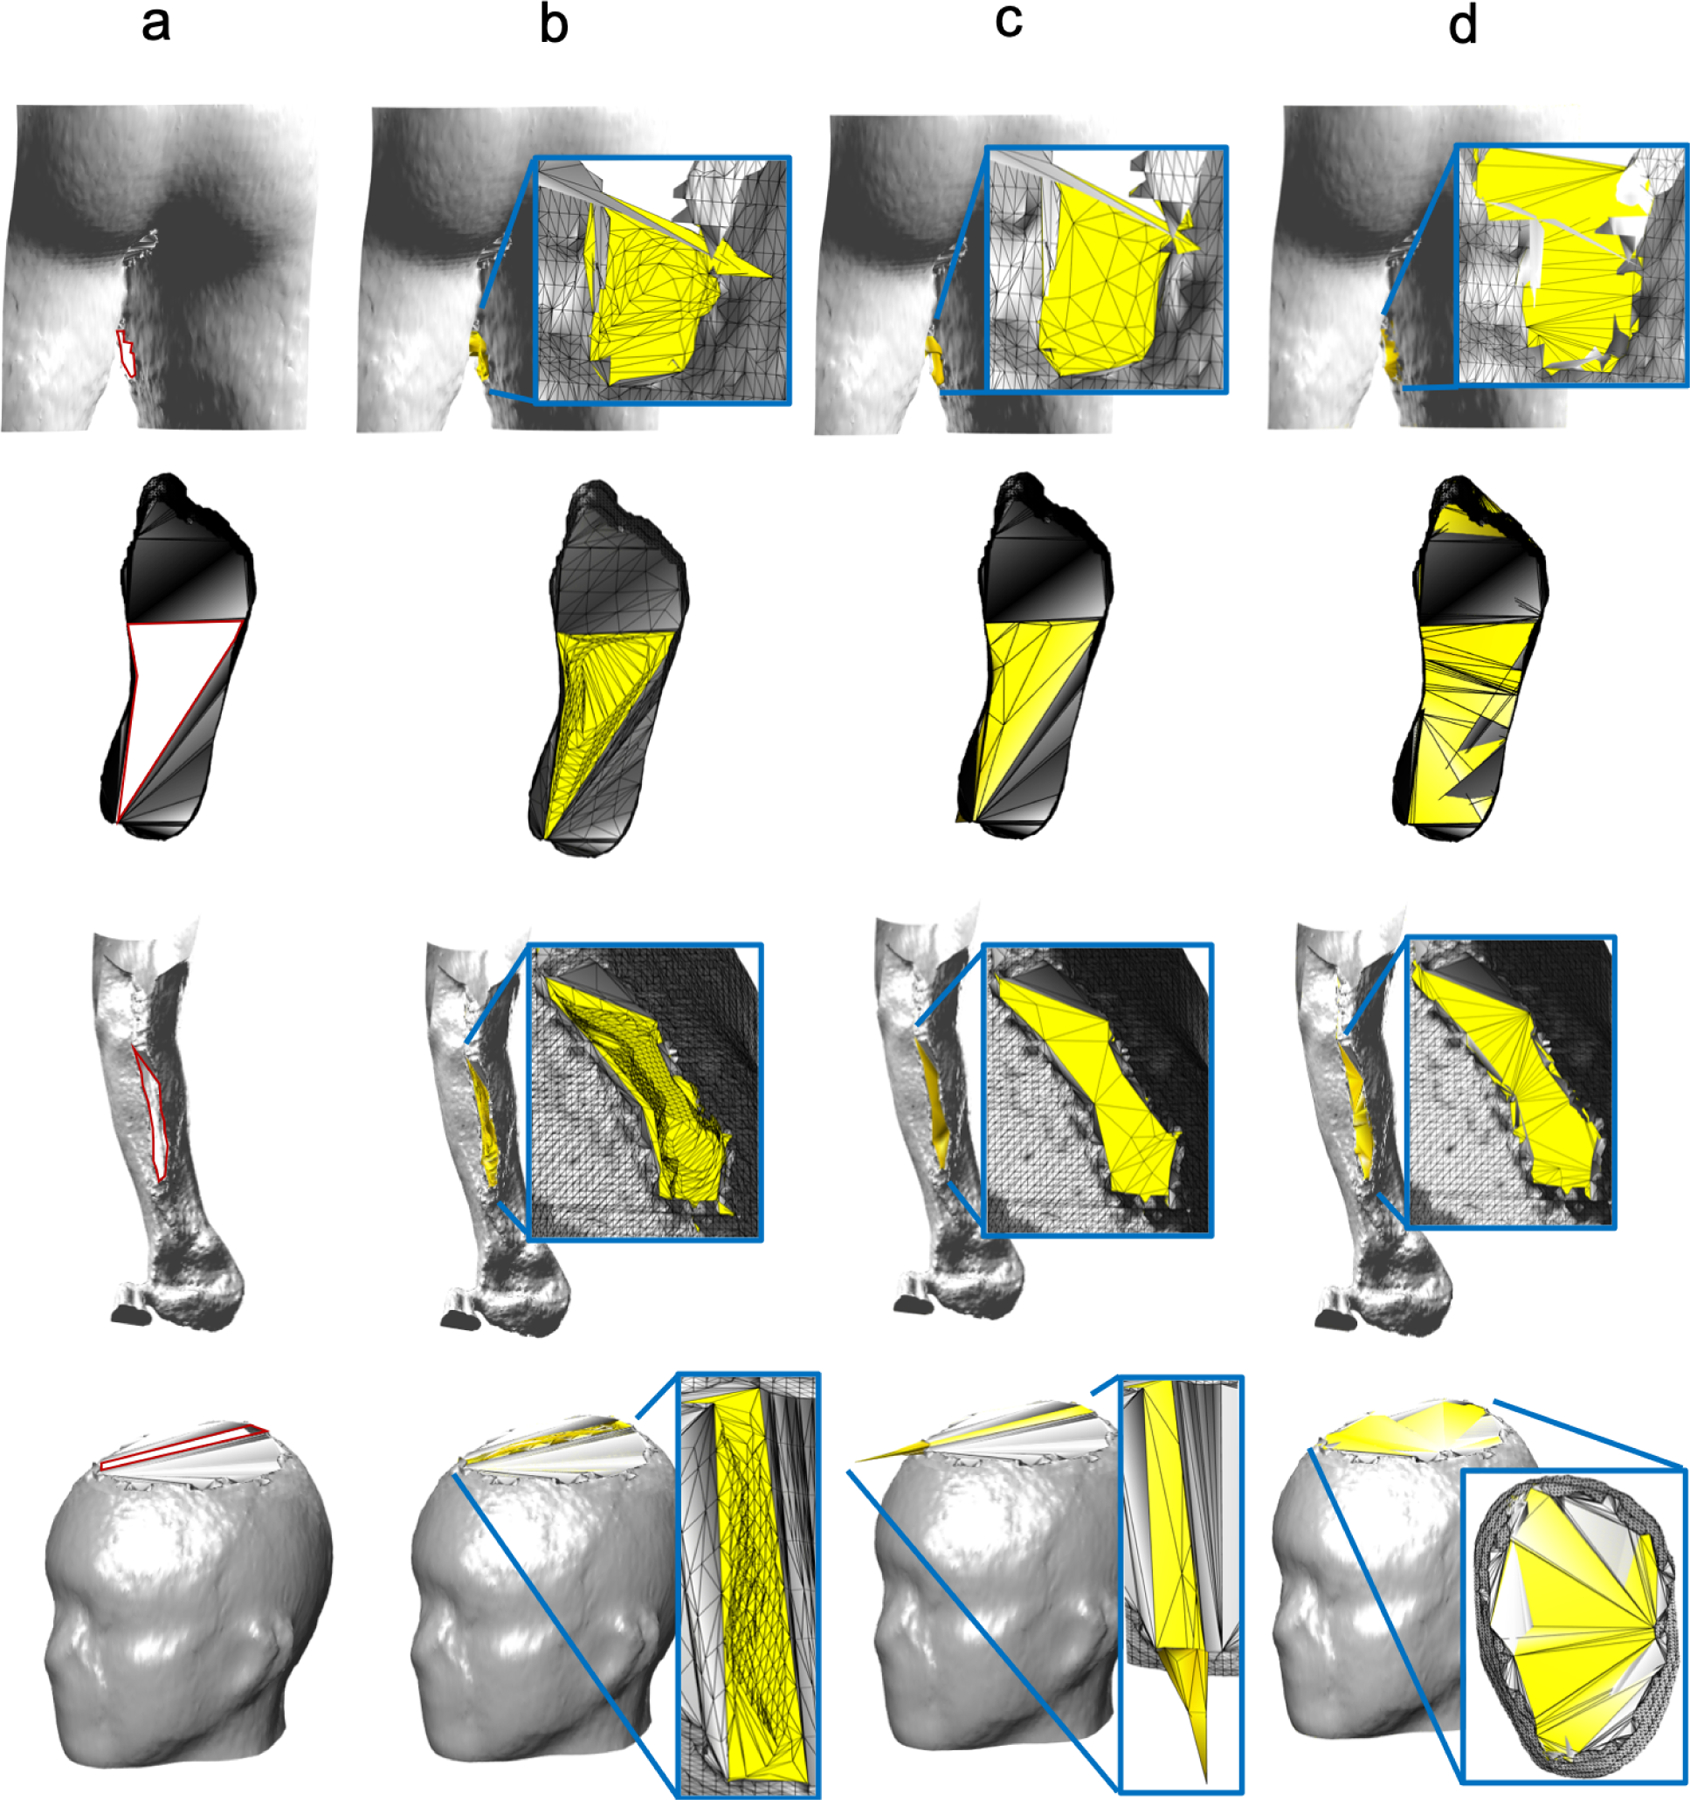 Hole Filling in 3D Scans for Digital Anthropometric Applications